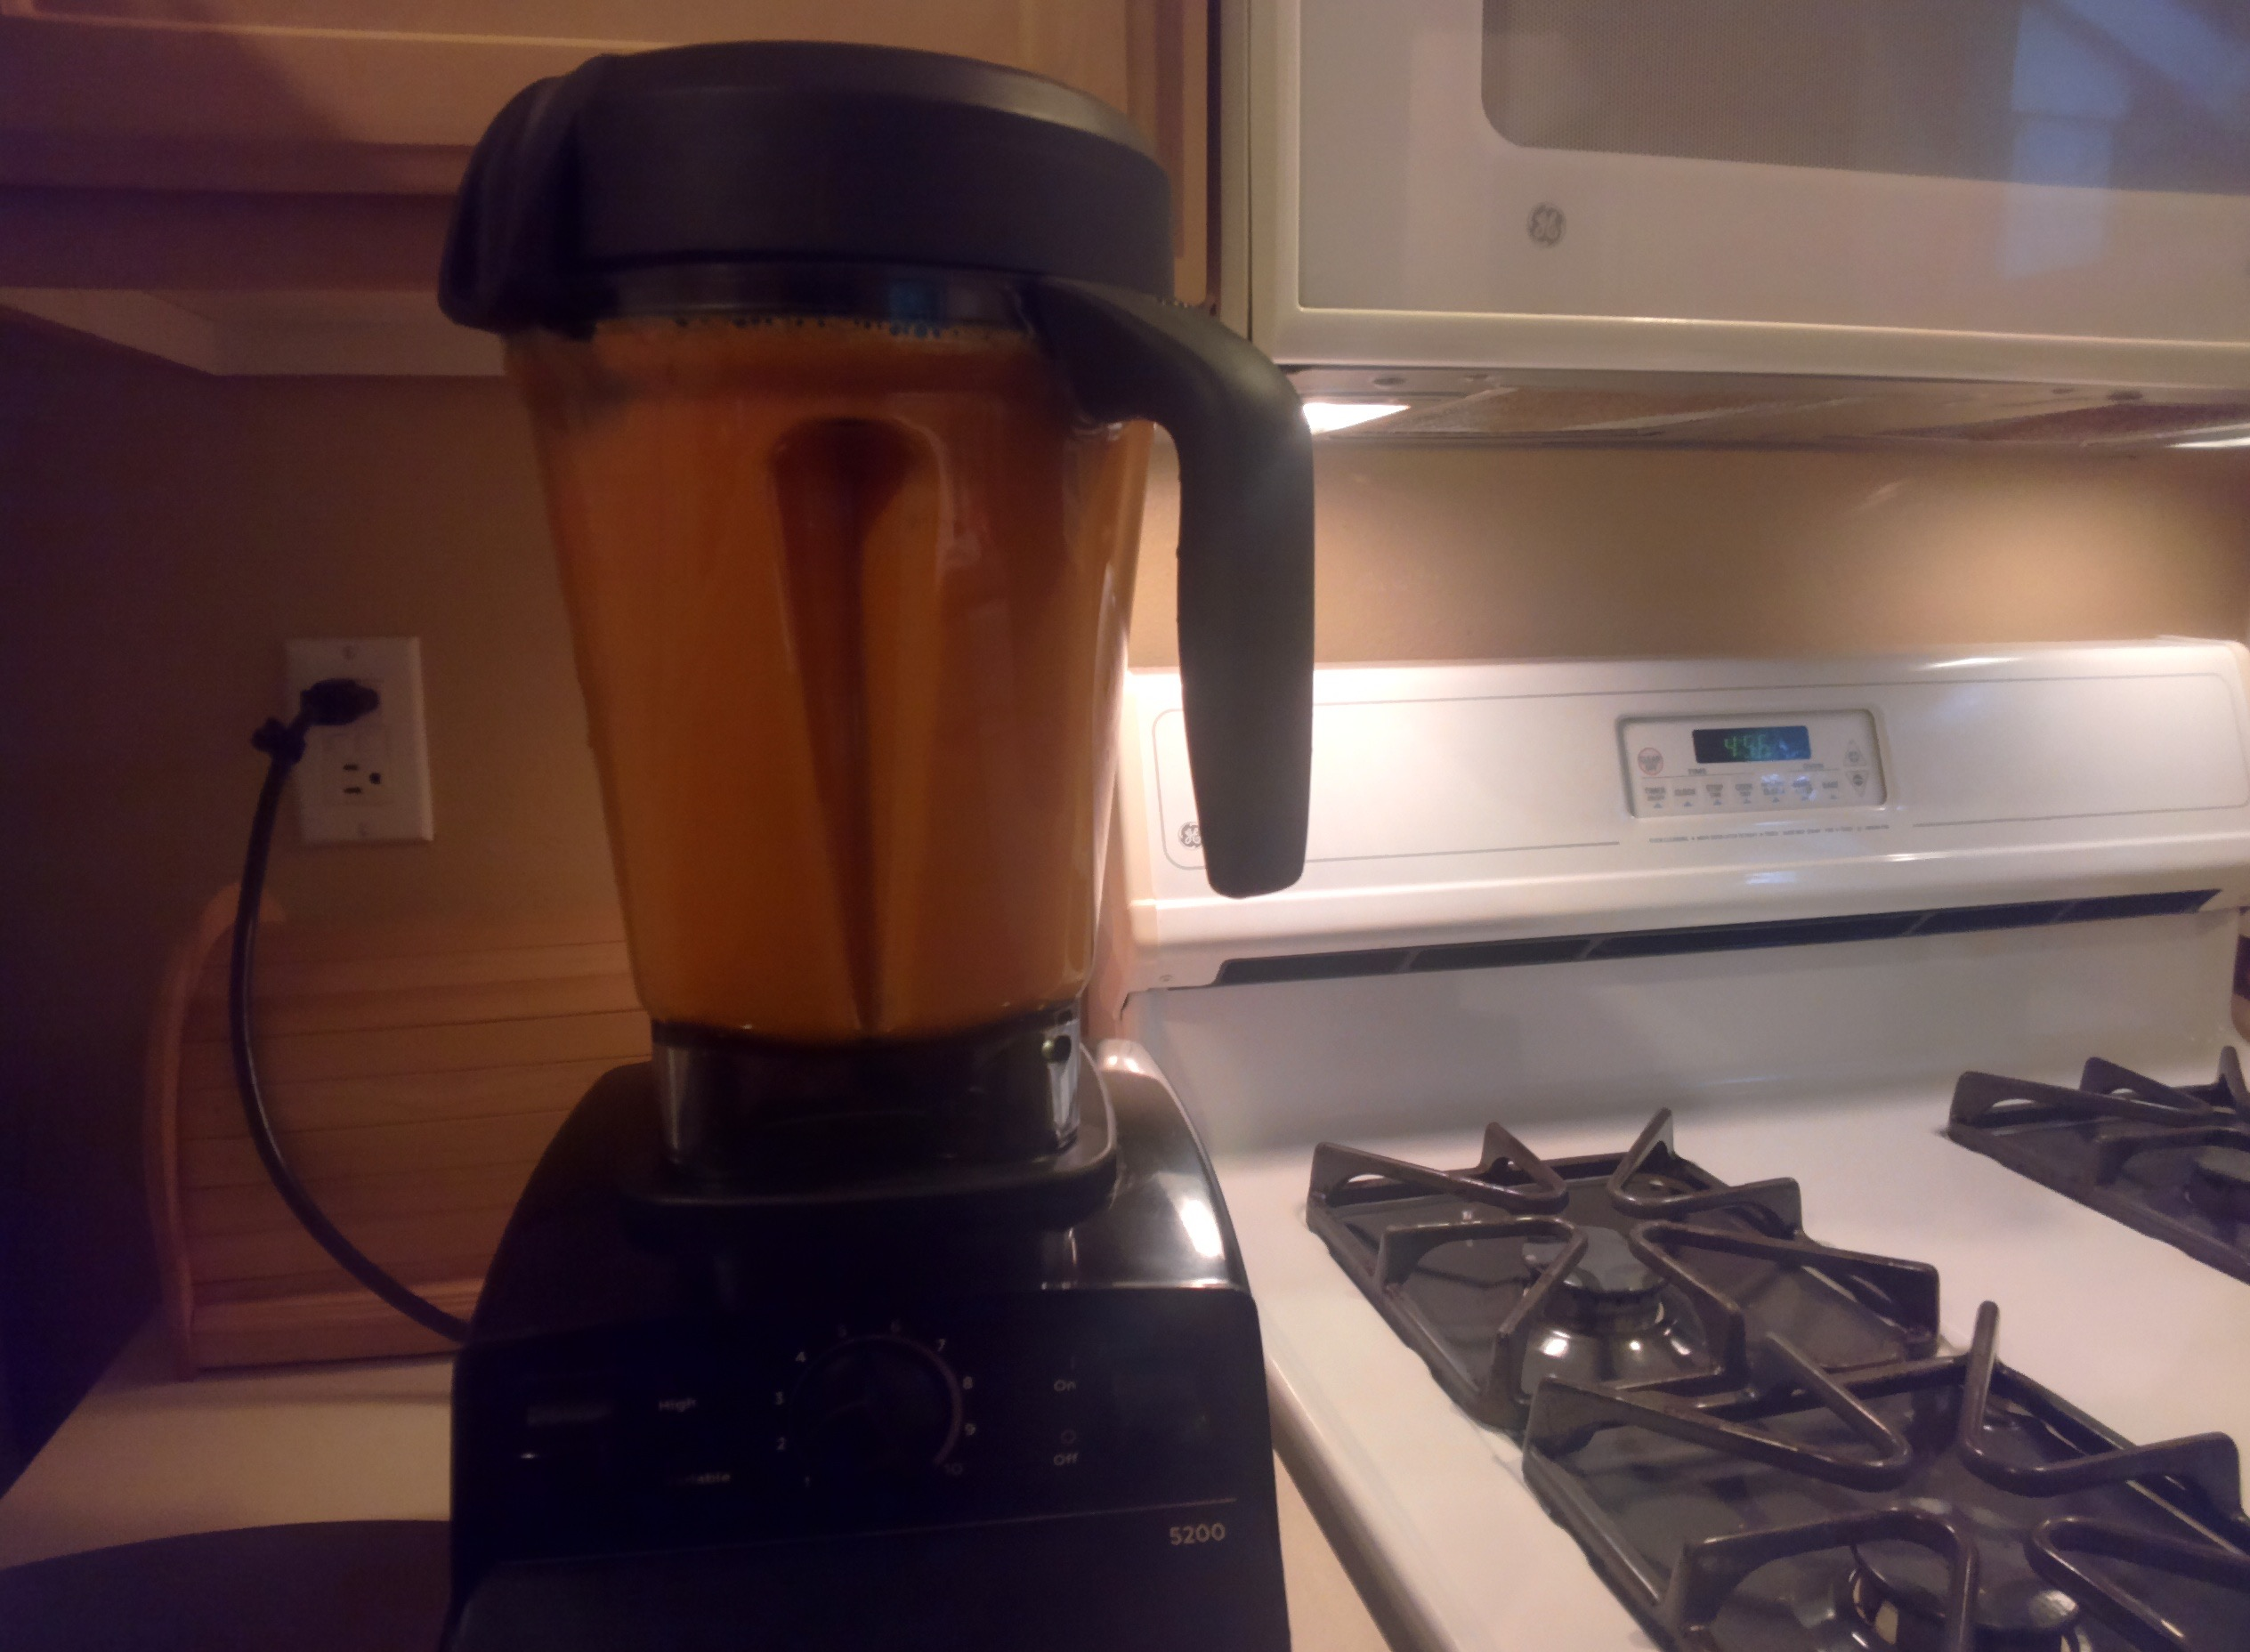 Blender with black cap and base, filled with blended carrots and sweet potato, sitting on countertop next to stove.